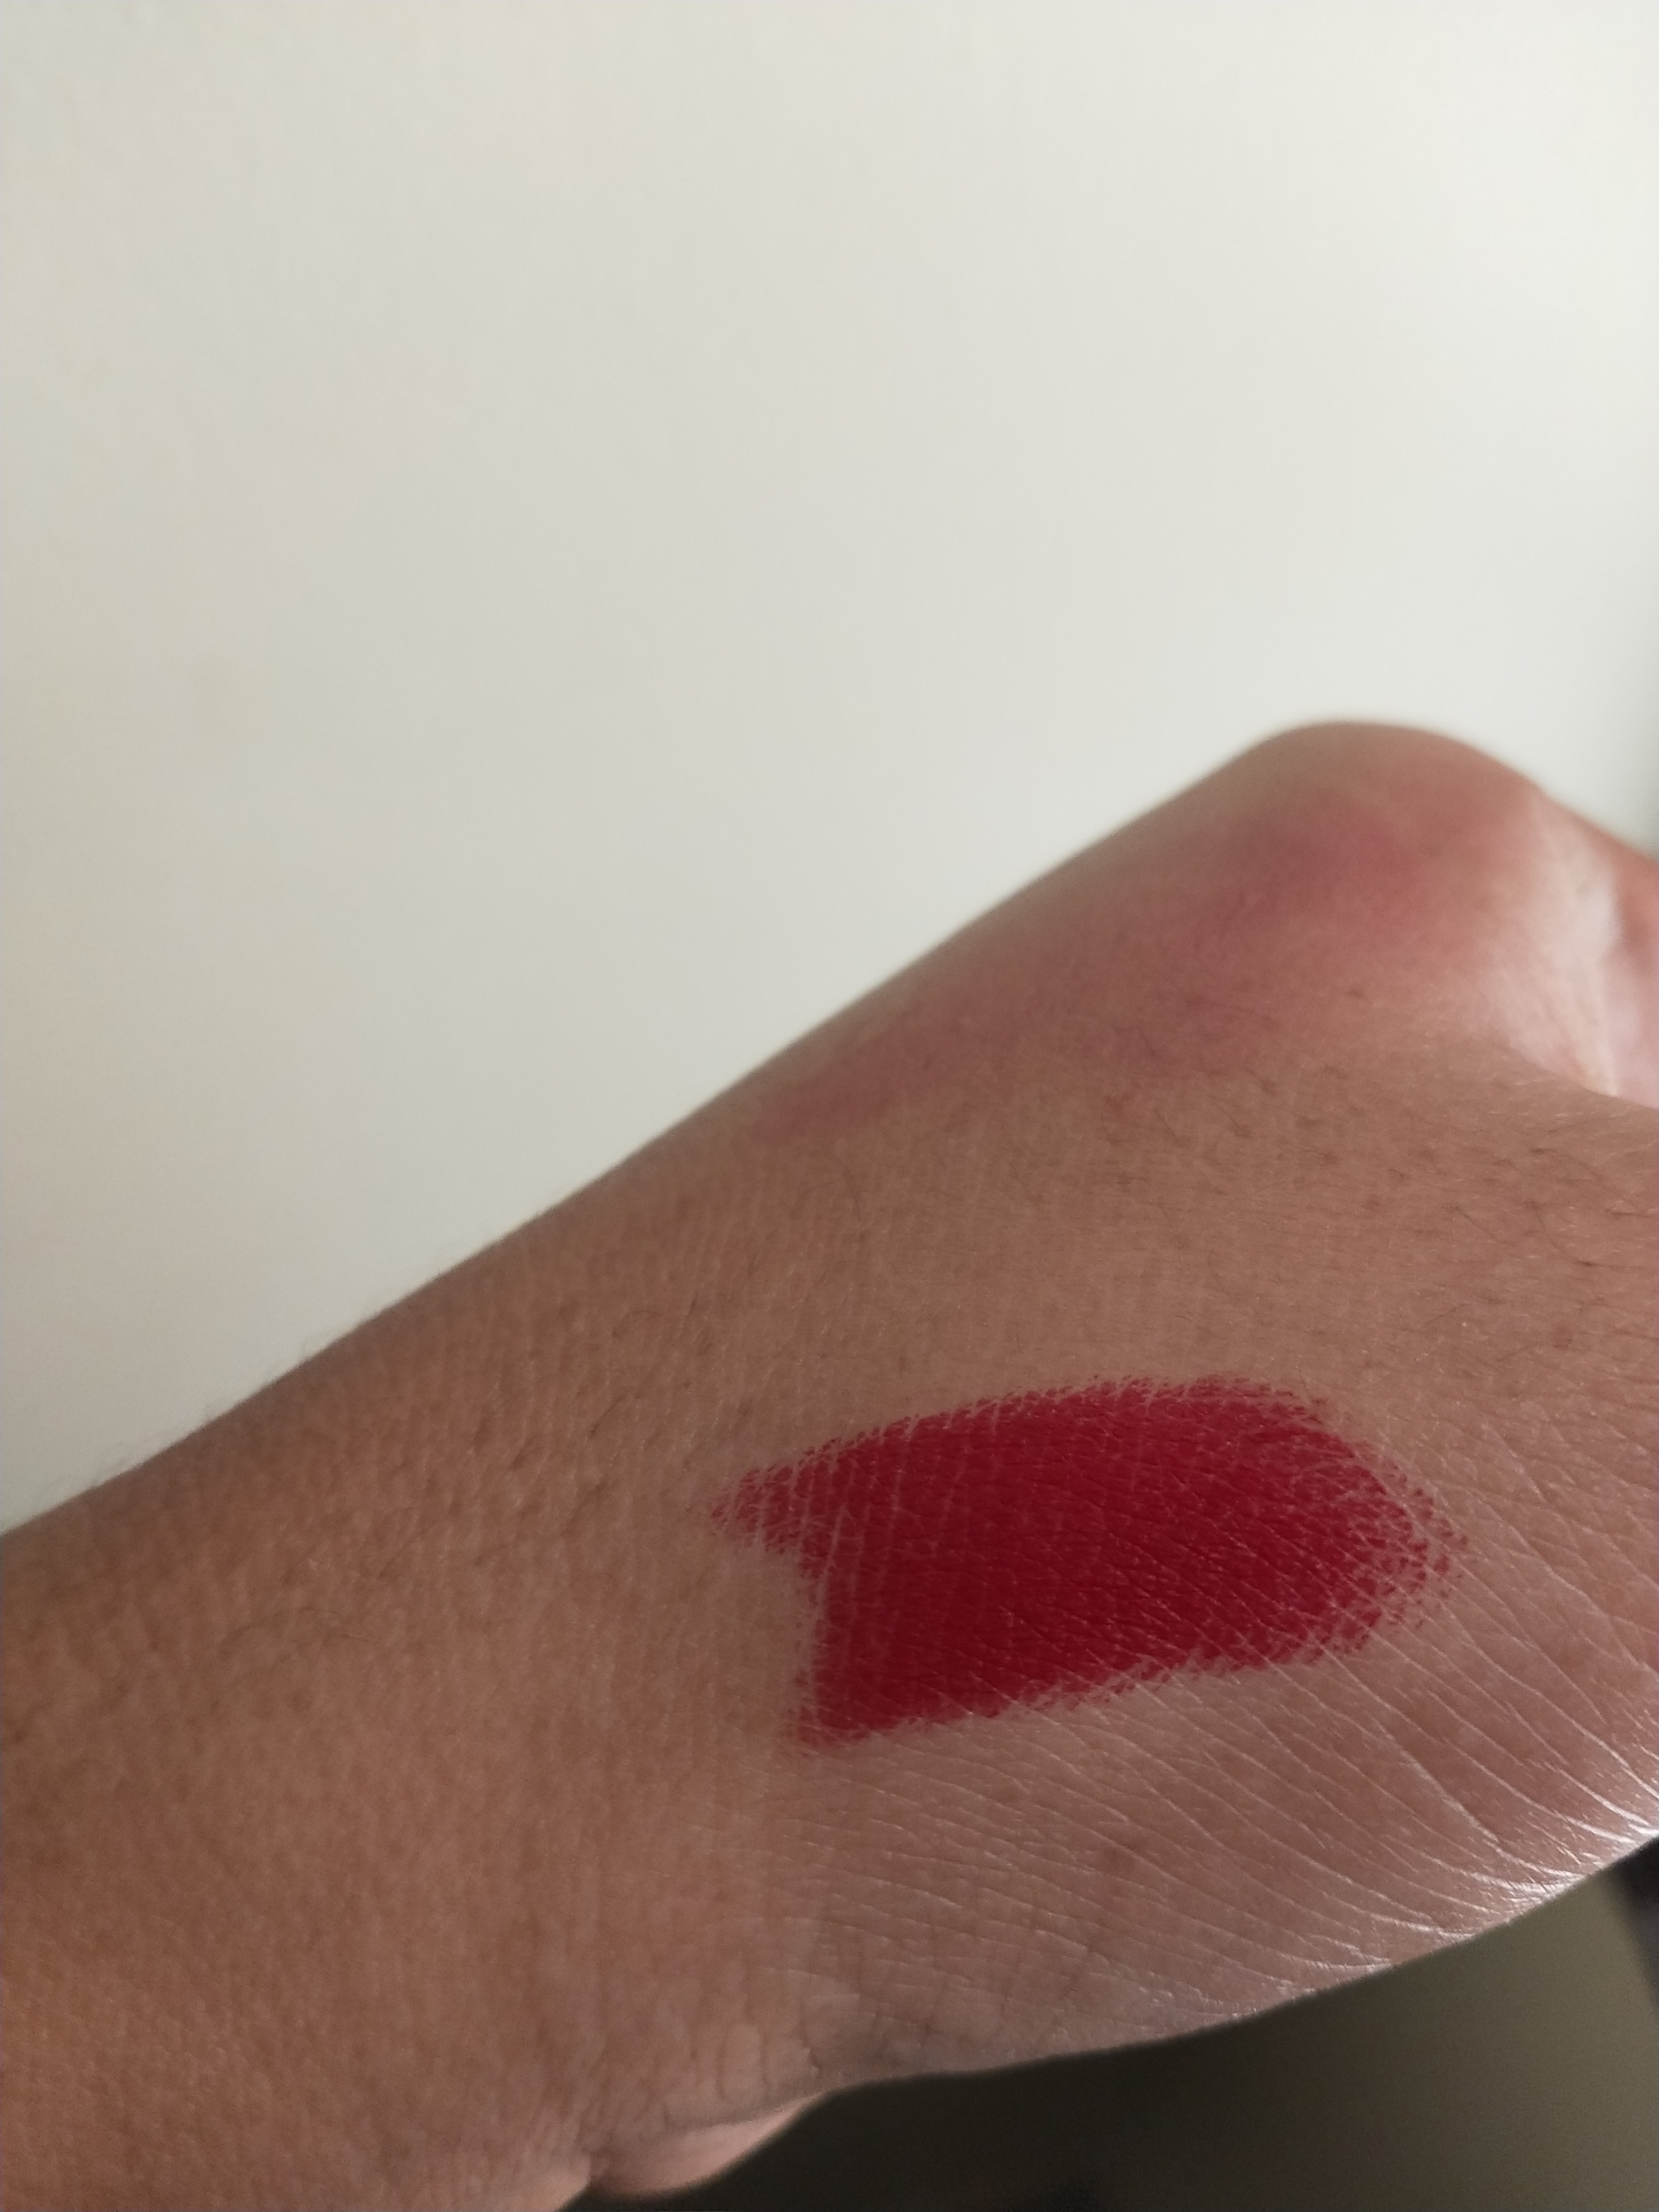 MAC Matte Lipstick-Lovely shades, matte finish and long lasting-By miss_hungry_soul-2